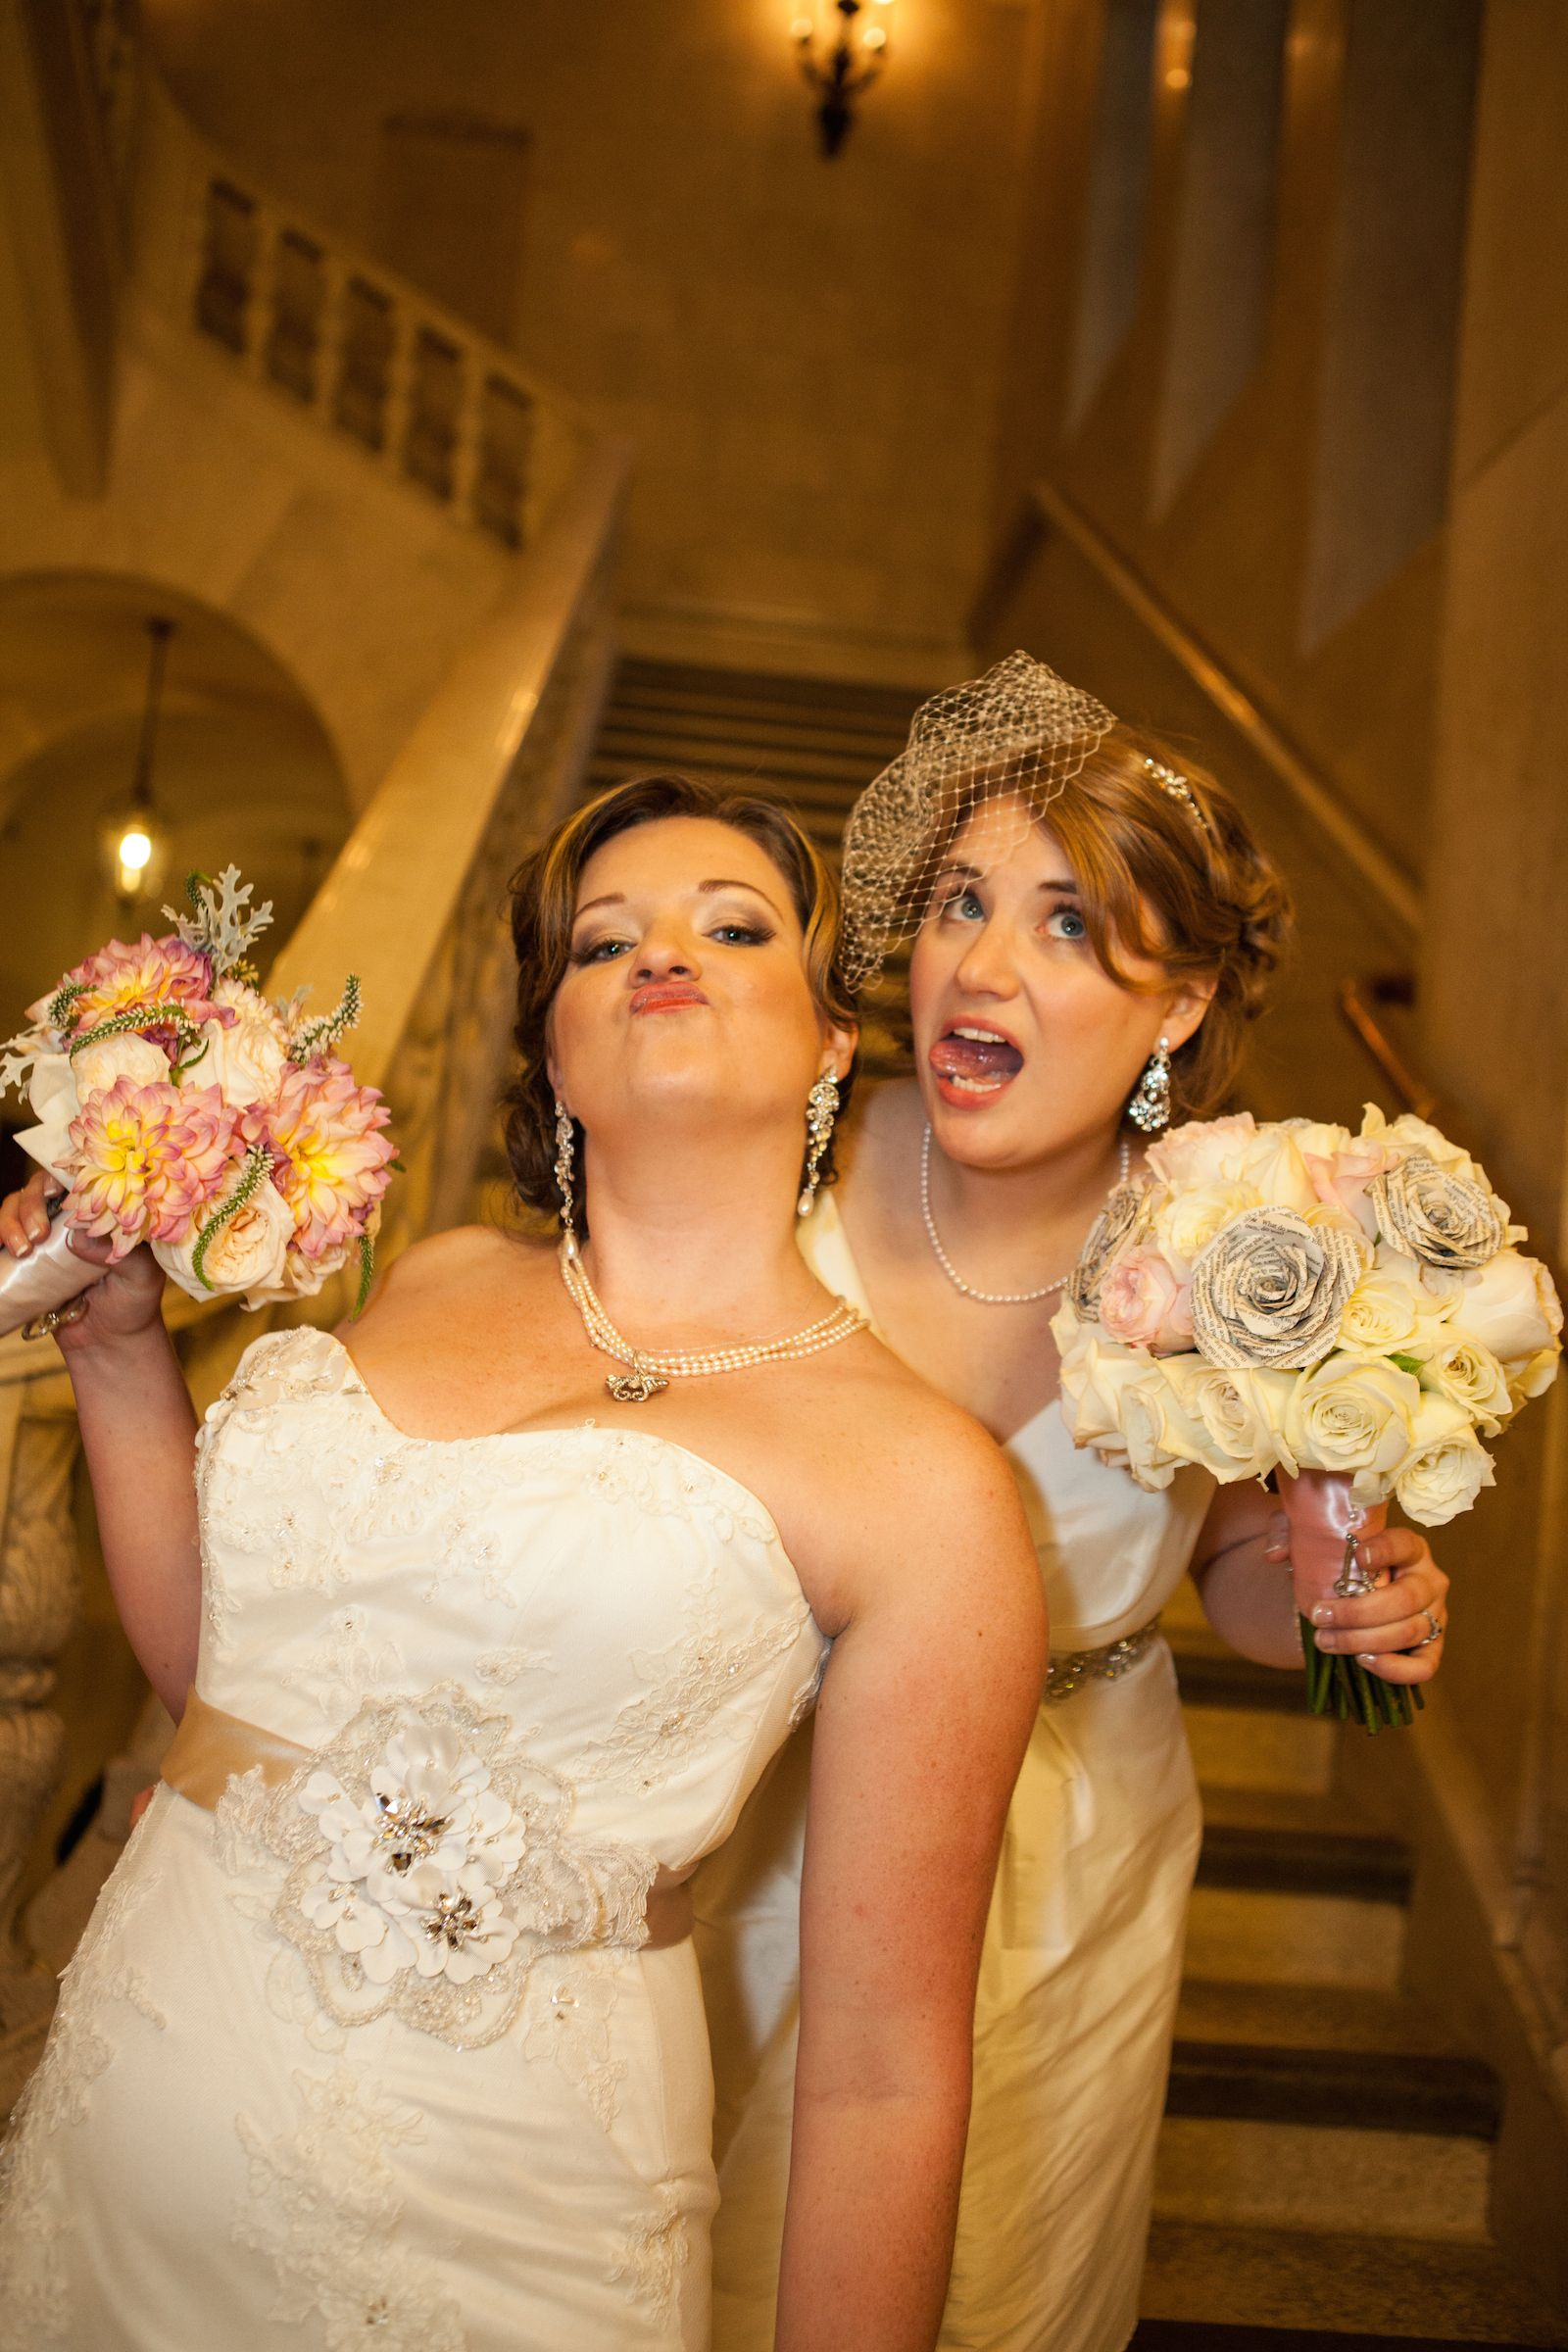 Corinne lexi silly wedding portrait of two crazy brides lesbian corinne lexi silly wedding portrait of two crazy brides lesbian wedding photo by in ombrellifo Choice Image